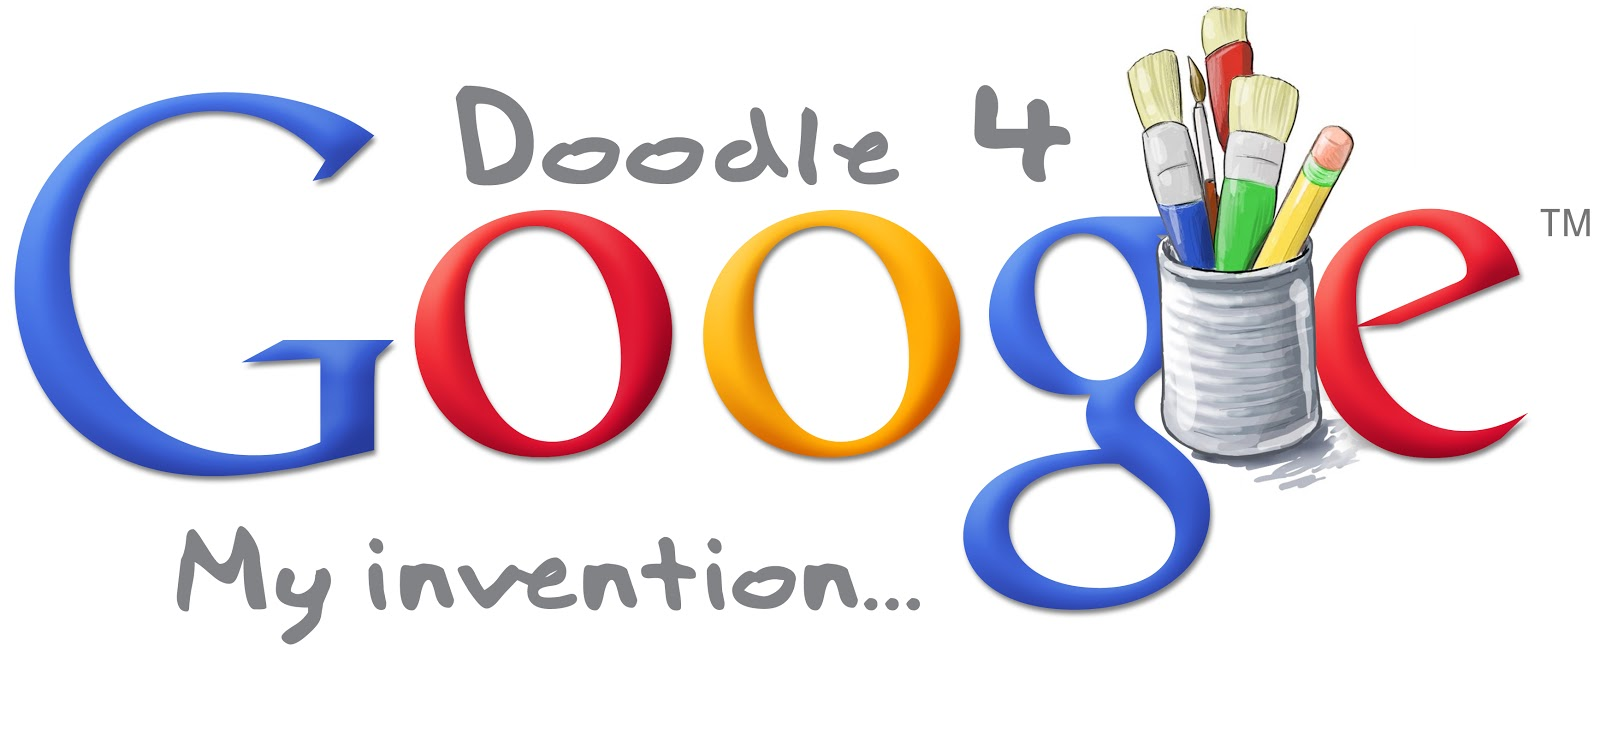 PCA - Art Blog: Doodle 4 Google 2013: My invention...